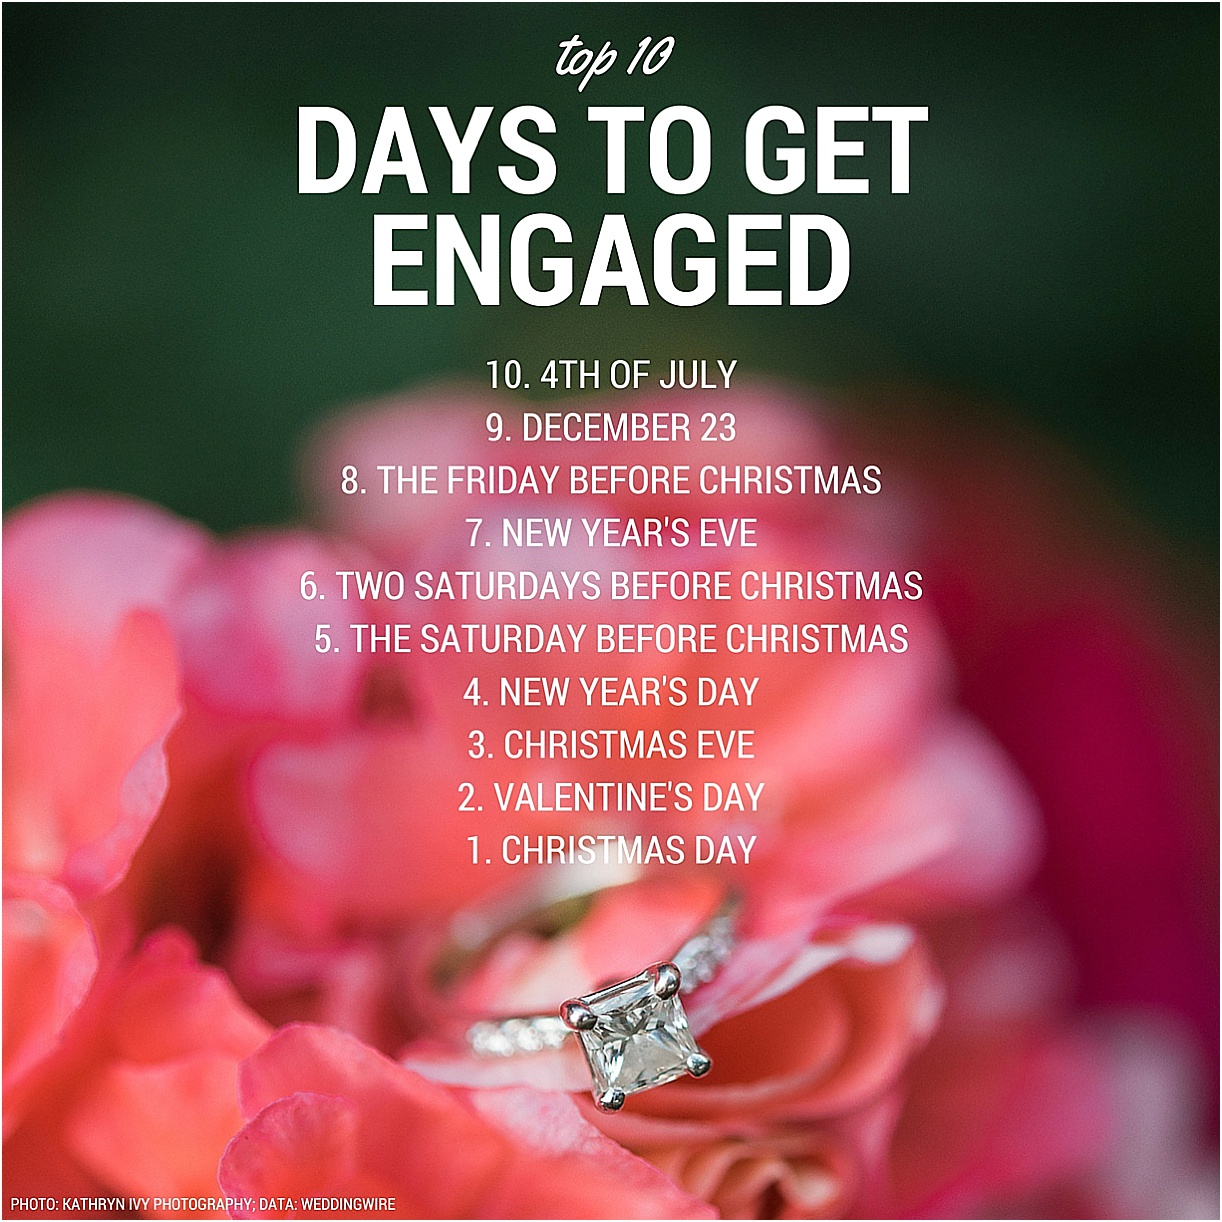 Top 10 Days To Get Engaged Hill City Bride Virginia